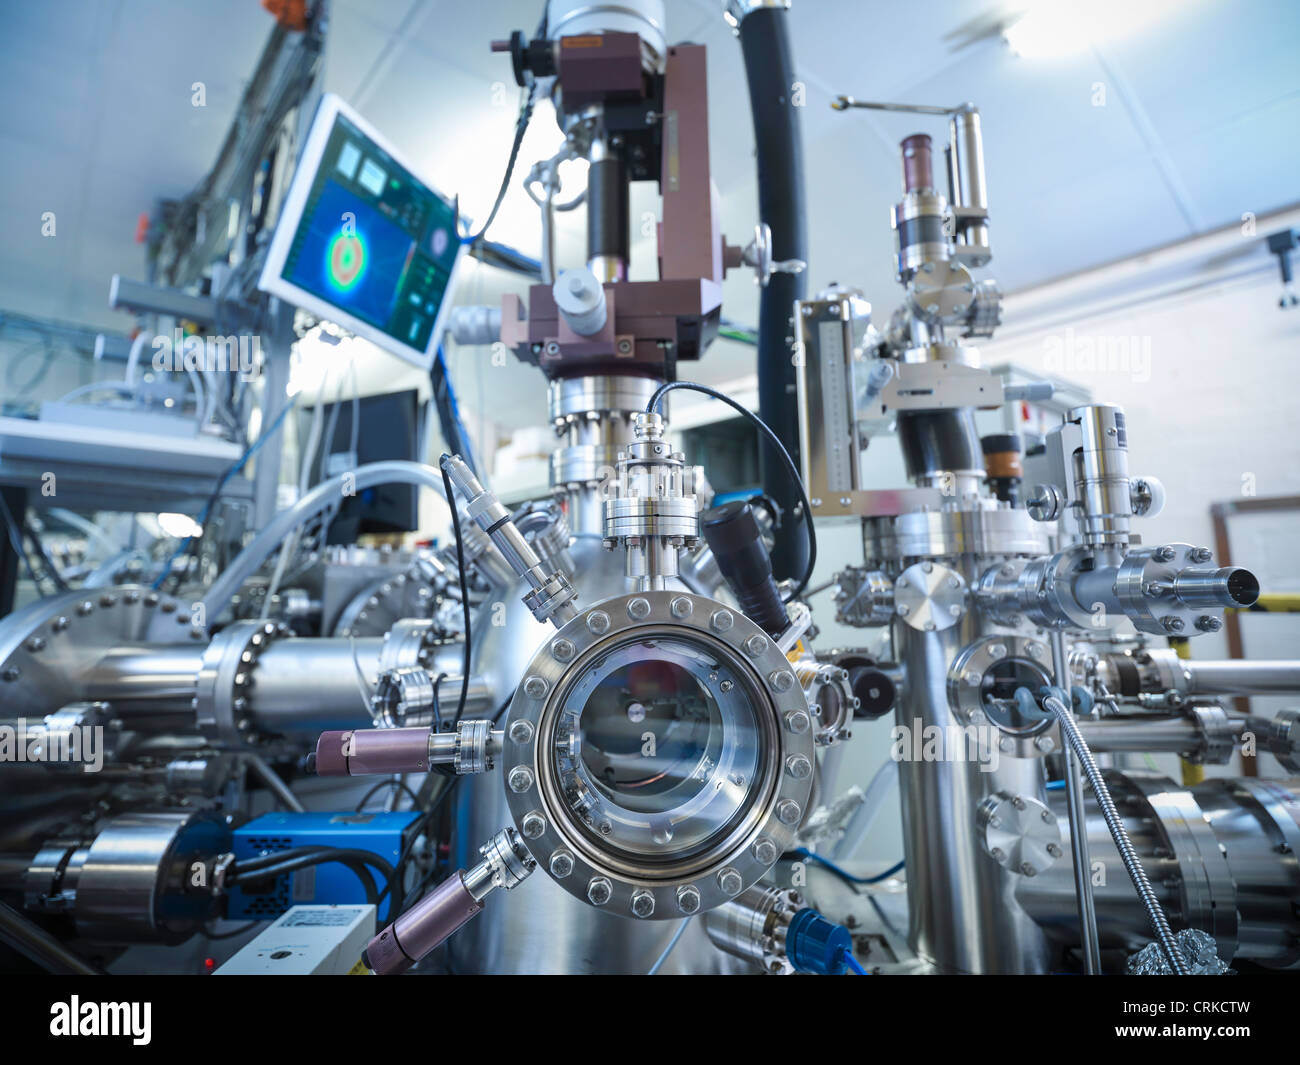 Vacuum chamber in lab - Stock Image